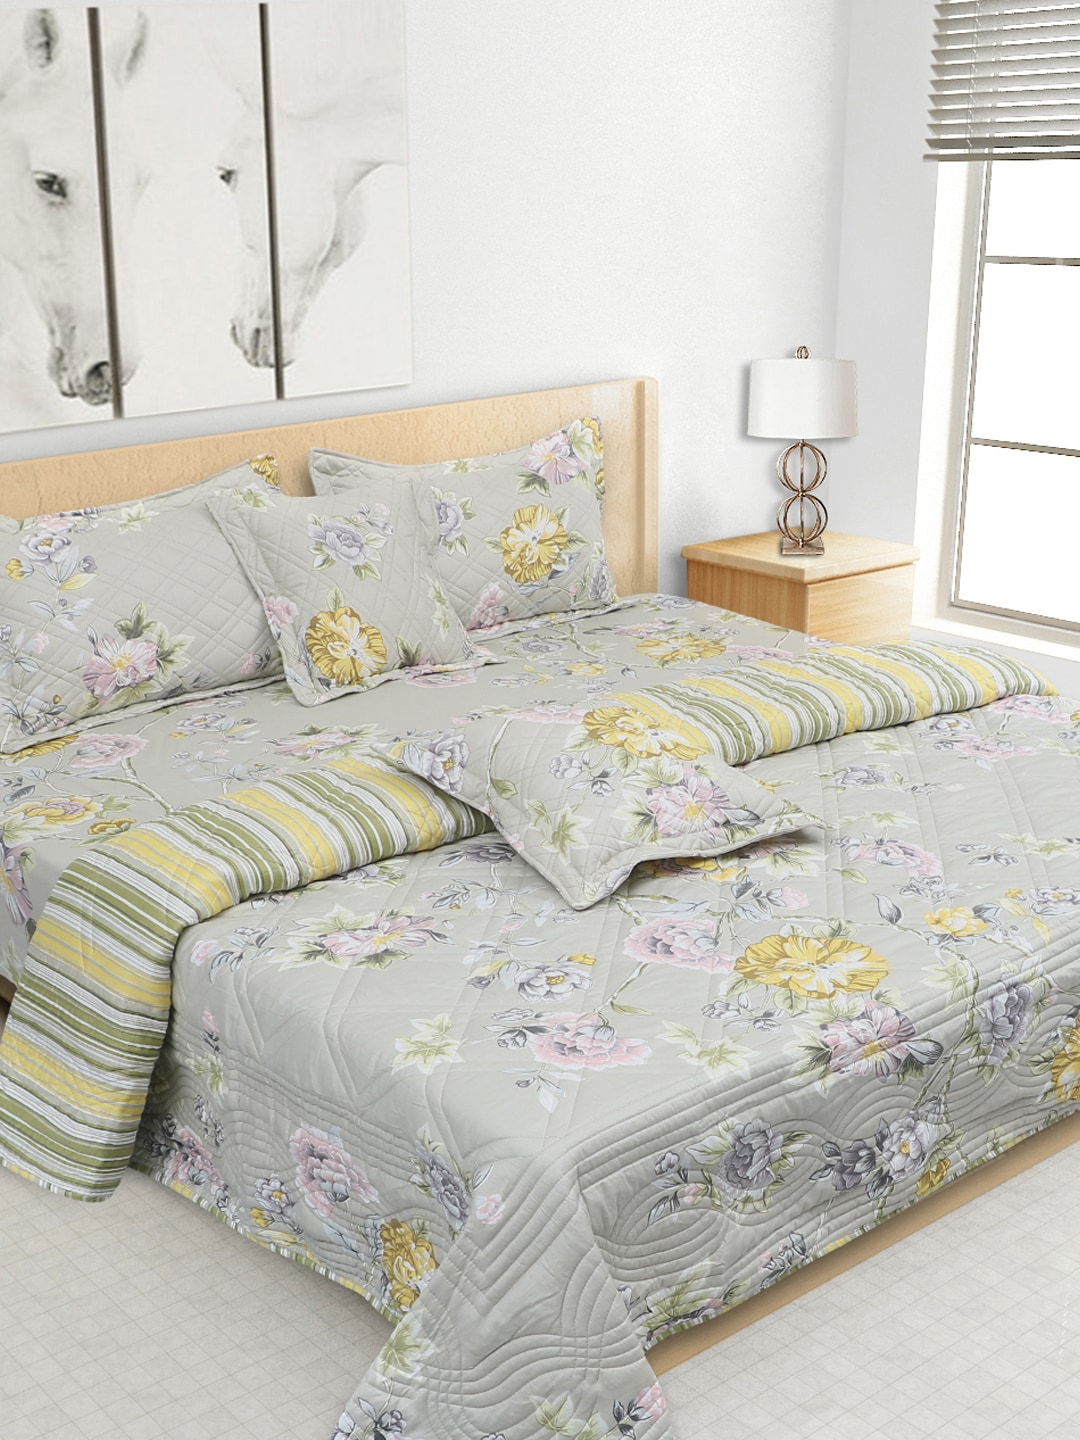 S9home by Seasons Grey Printed Co-Ordinated Bedding Set with Quilt (Comforter)